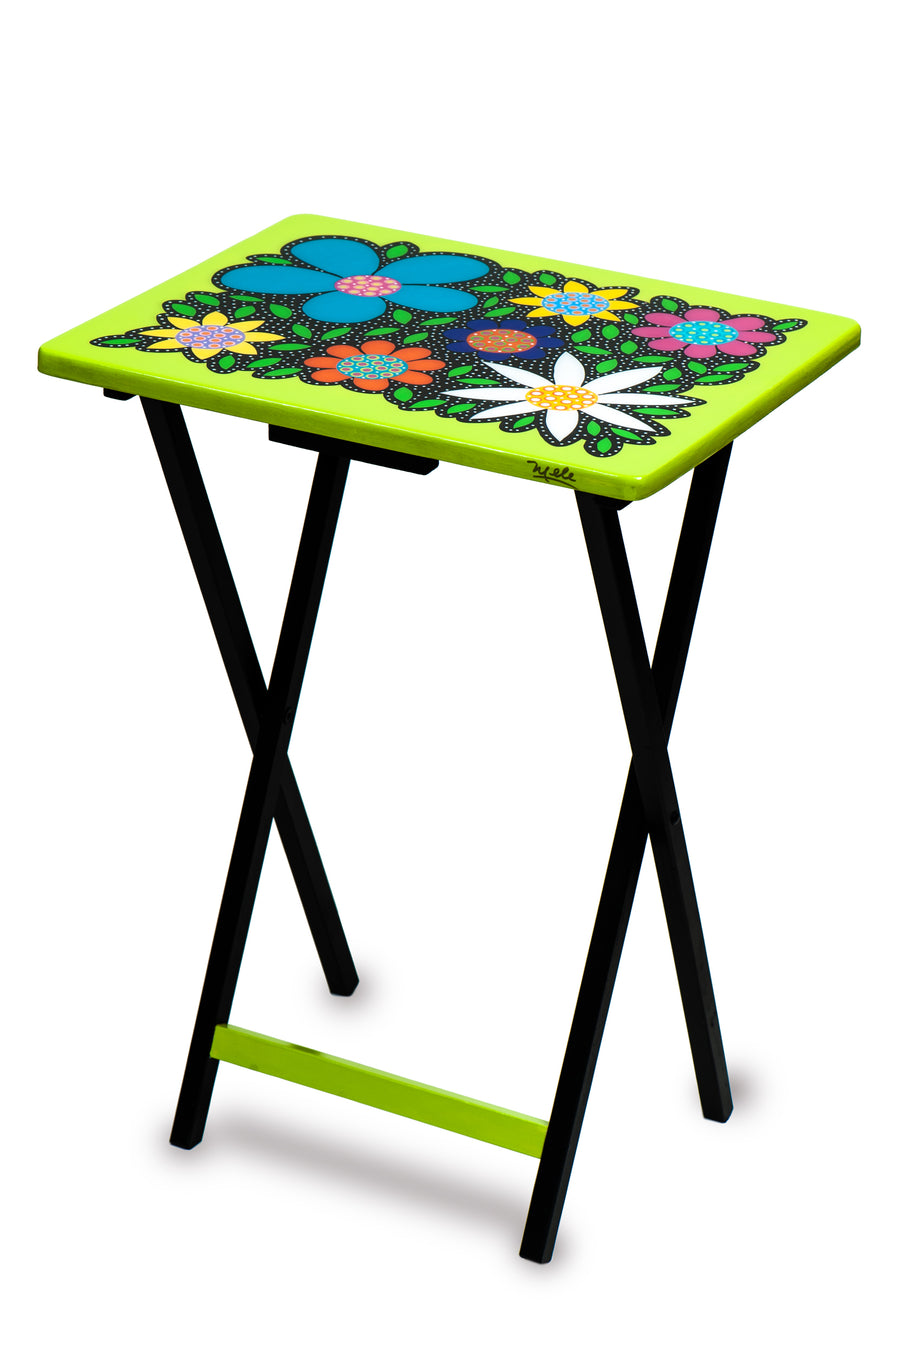 Folding Table - Lime Green - Art by Mele